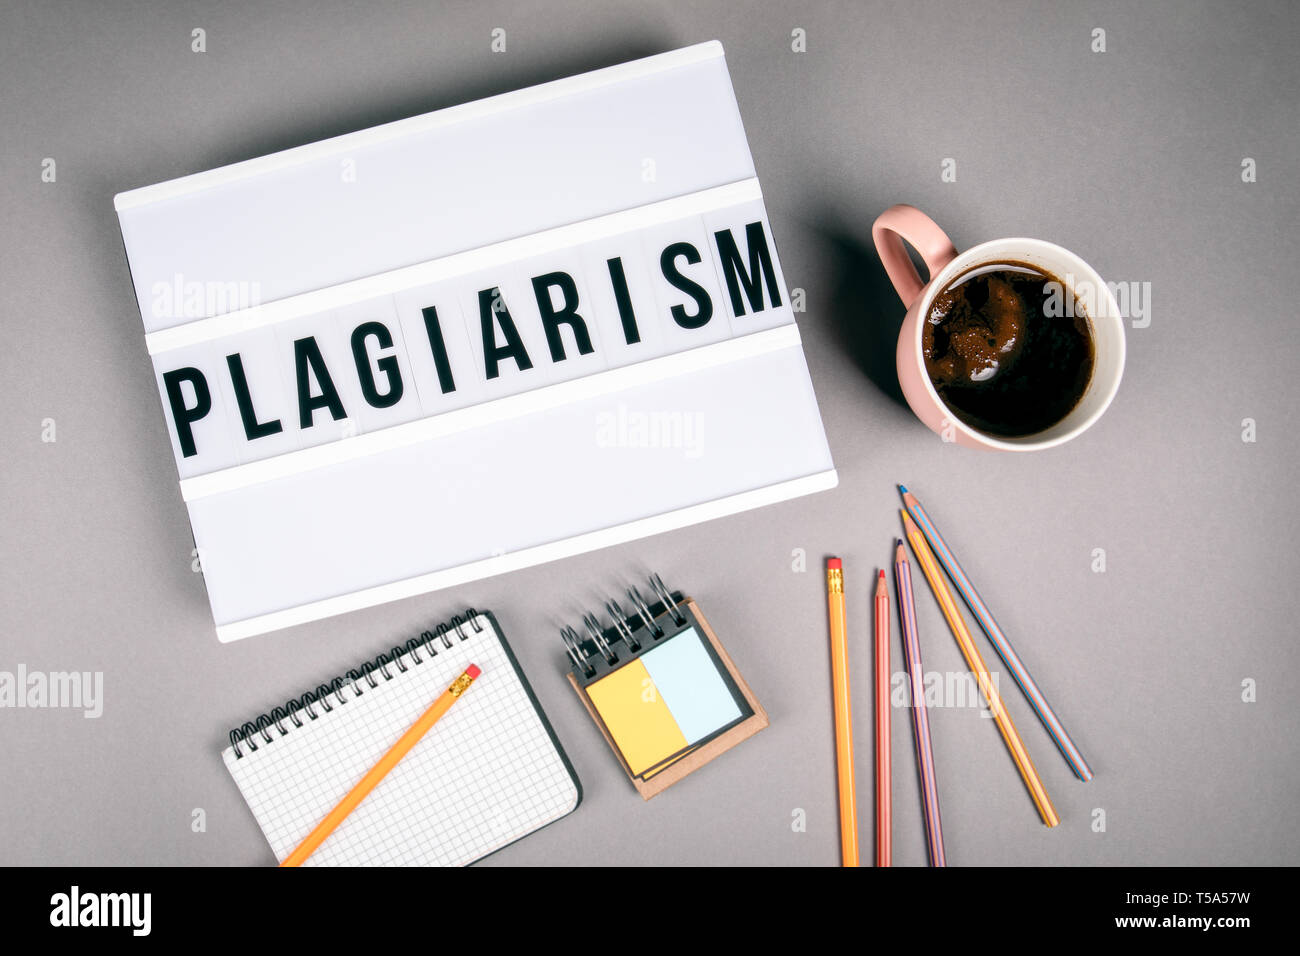 Plagiarism. Text in light box Stock Photo